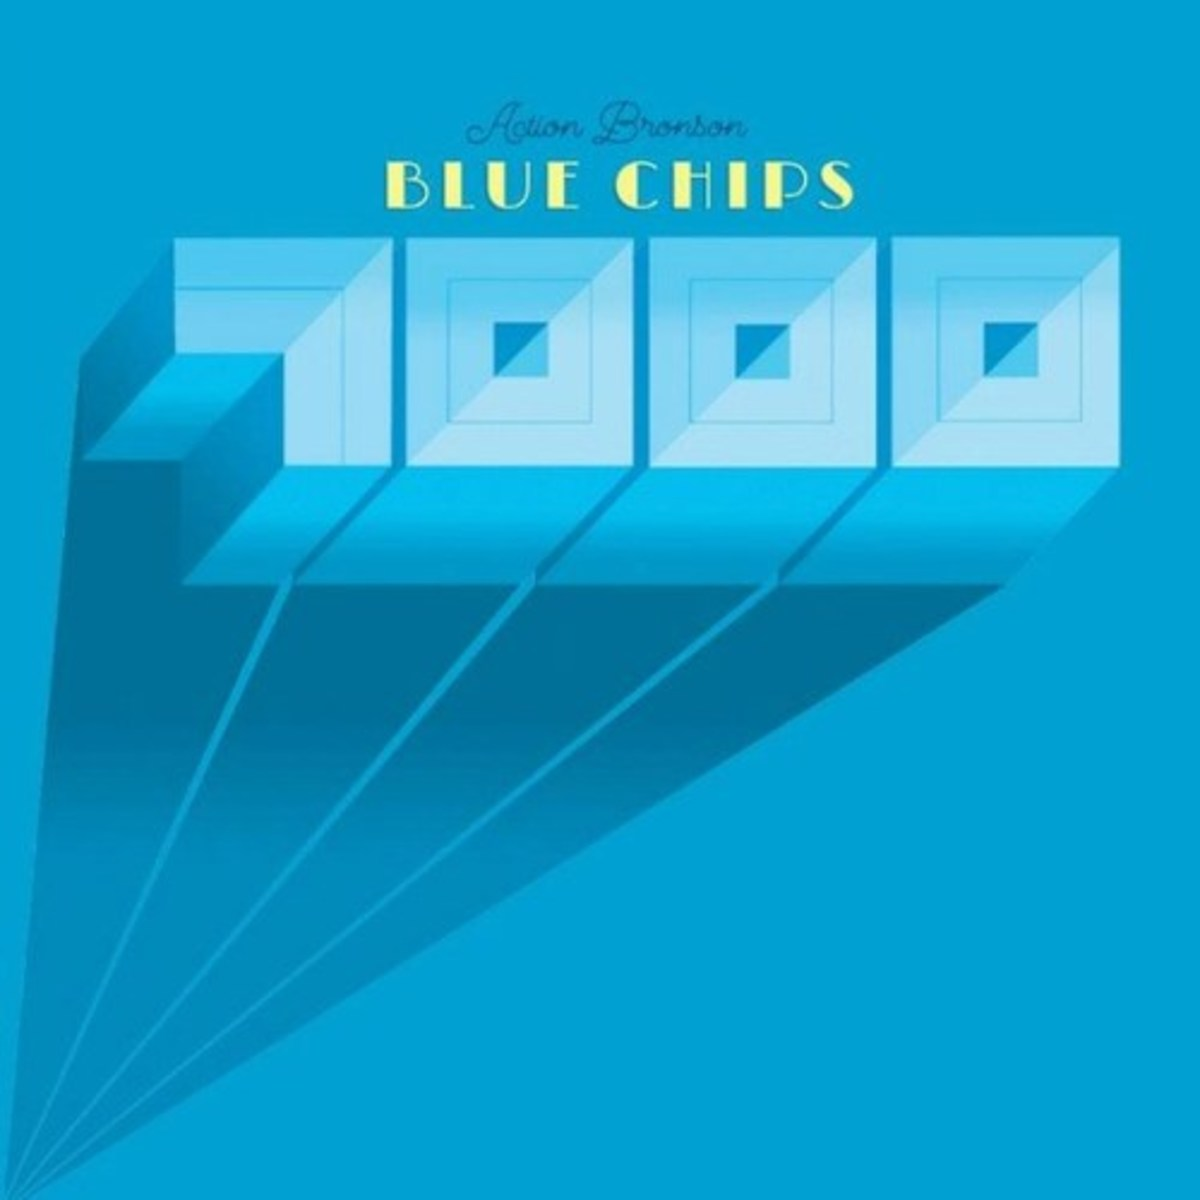 action-bronson-blue-chips-7000.jpeg